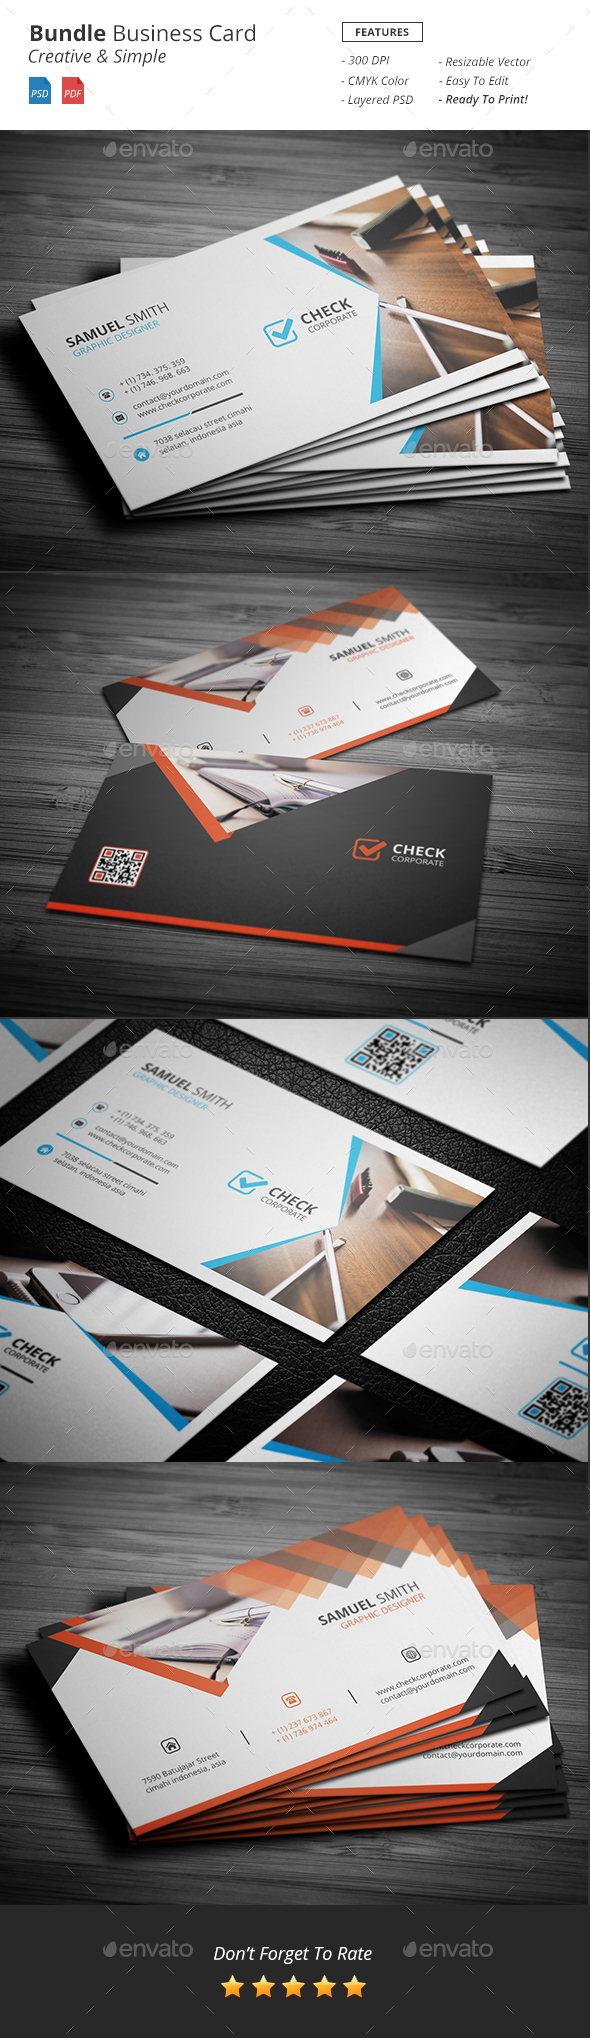 Bundle Business Card - Corporate Business Cards